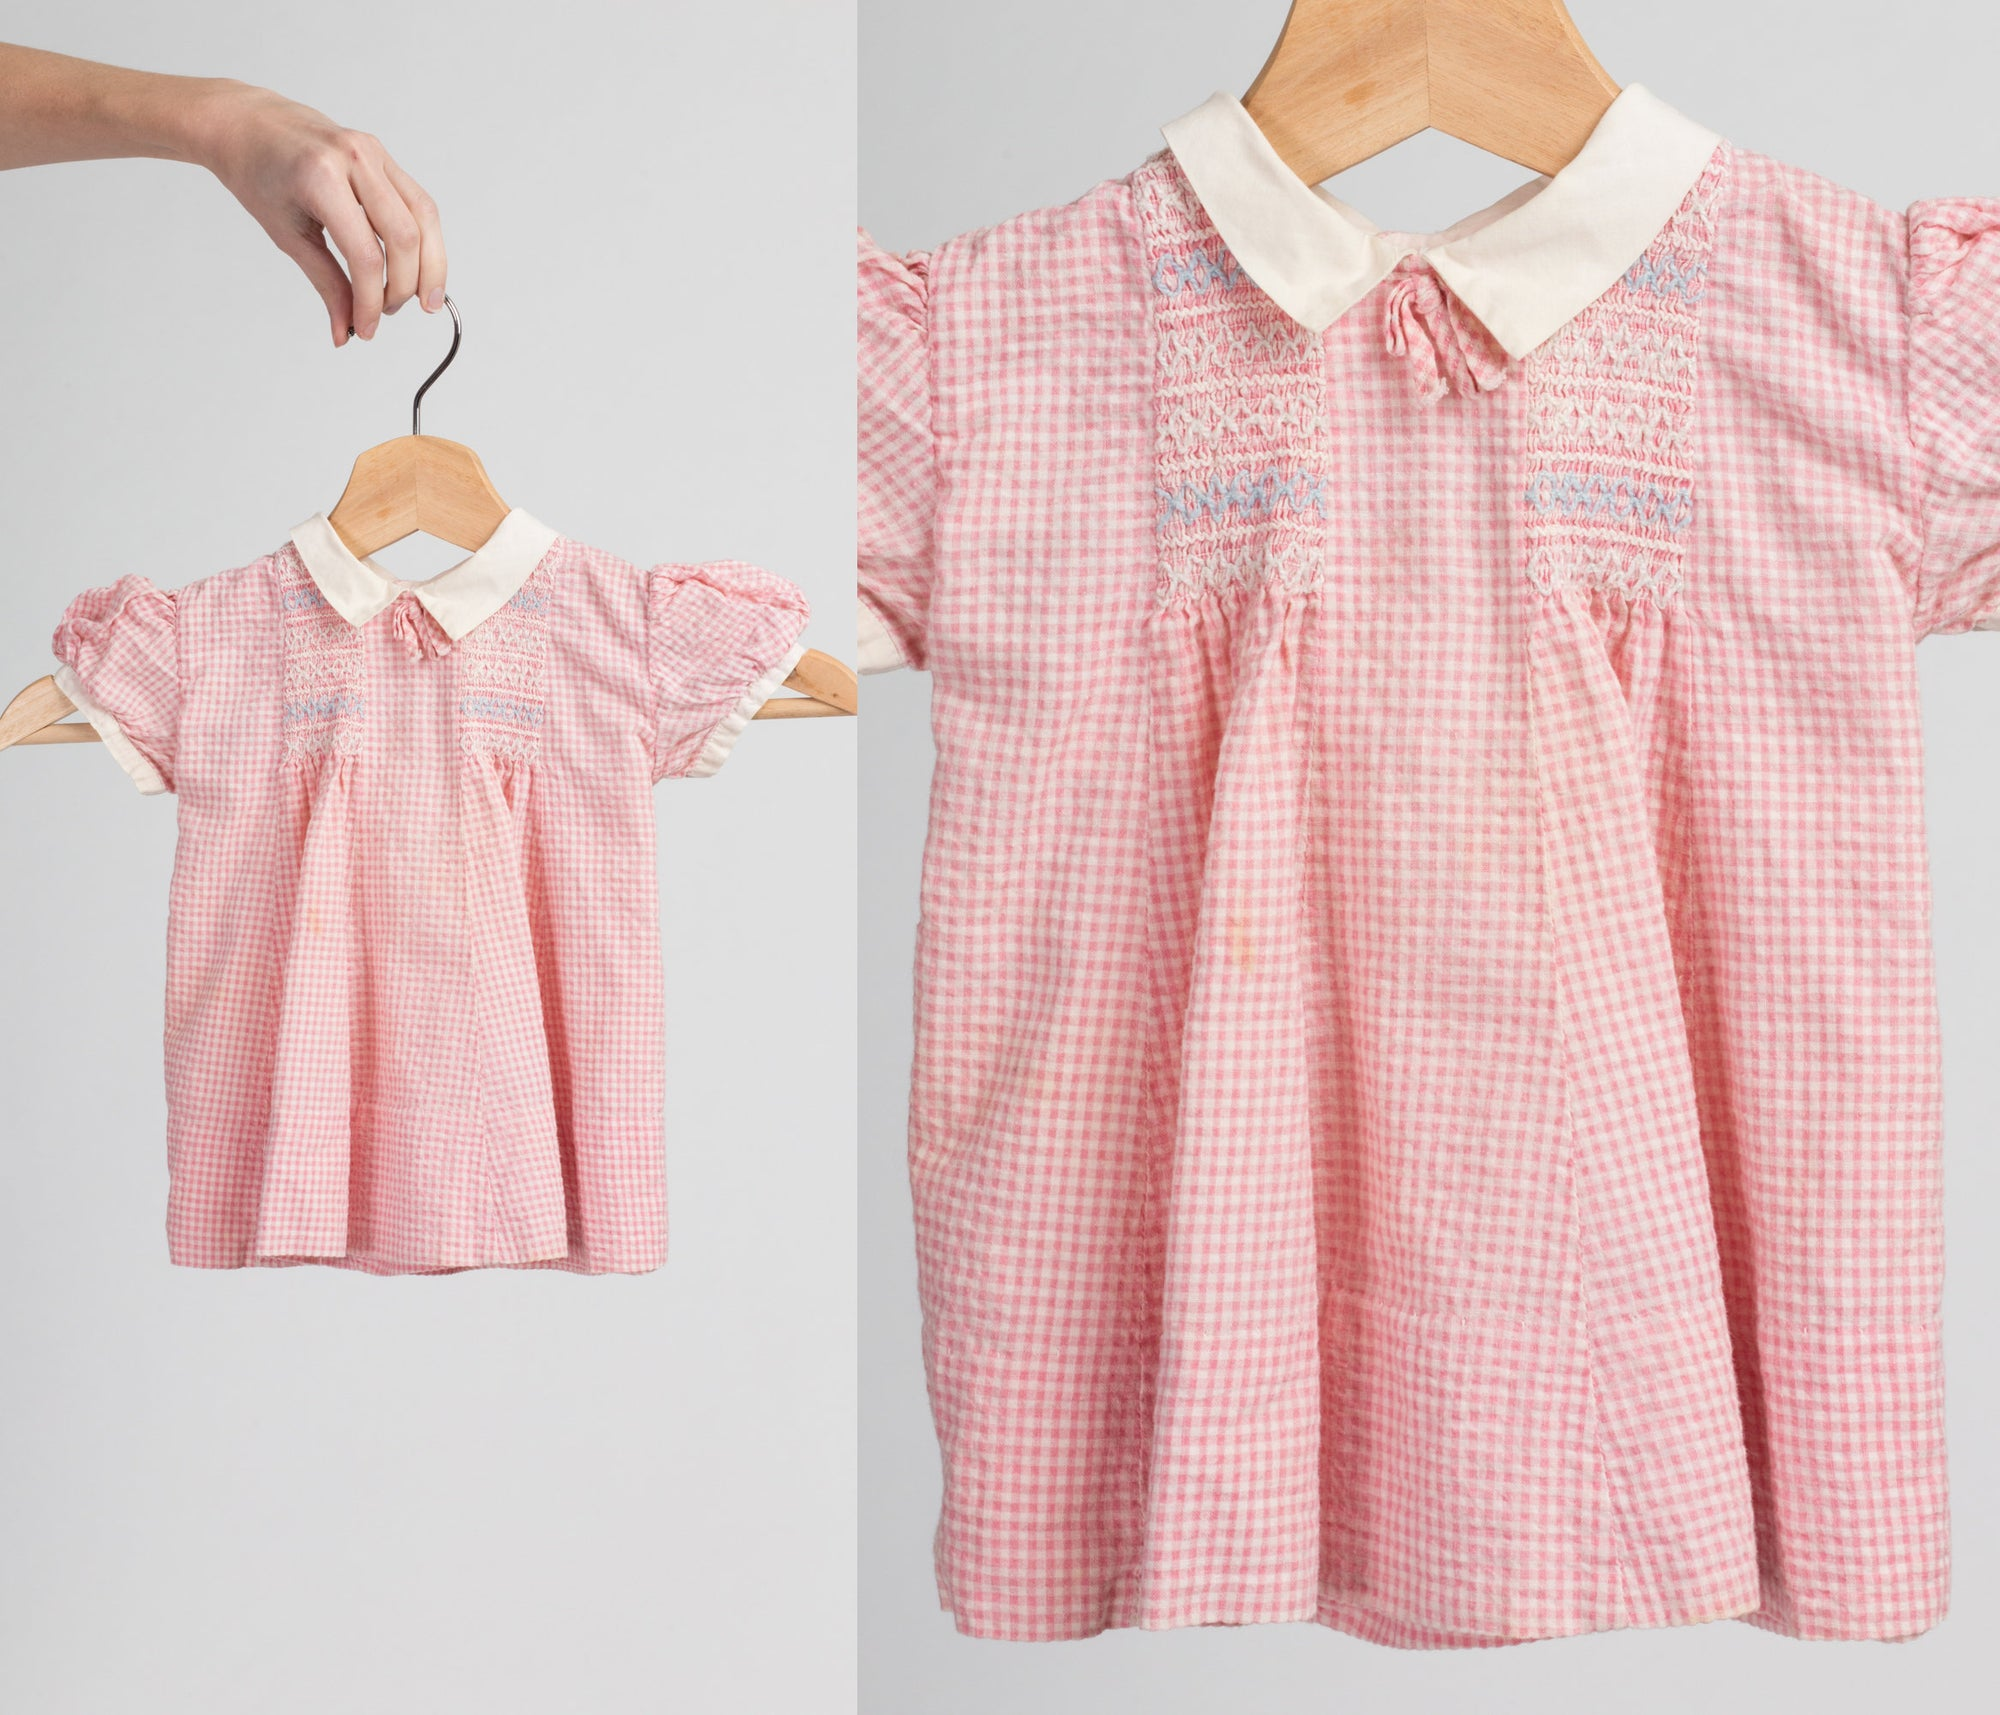 60s Nannette Originals Pink Gingham Baby Girl Dress - 12 Months | Vintage Smocked Seersucker Peter Pan Collar Dress